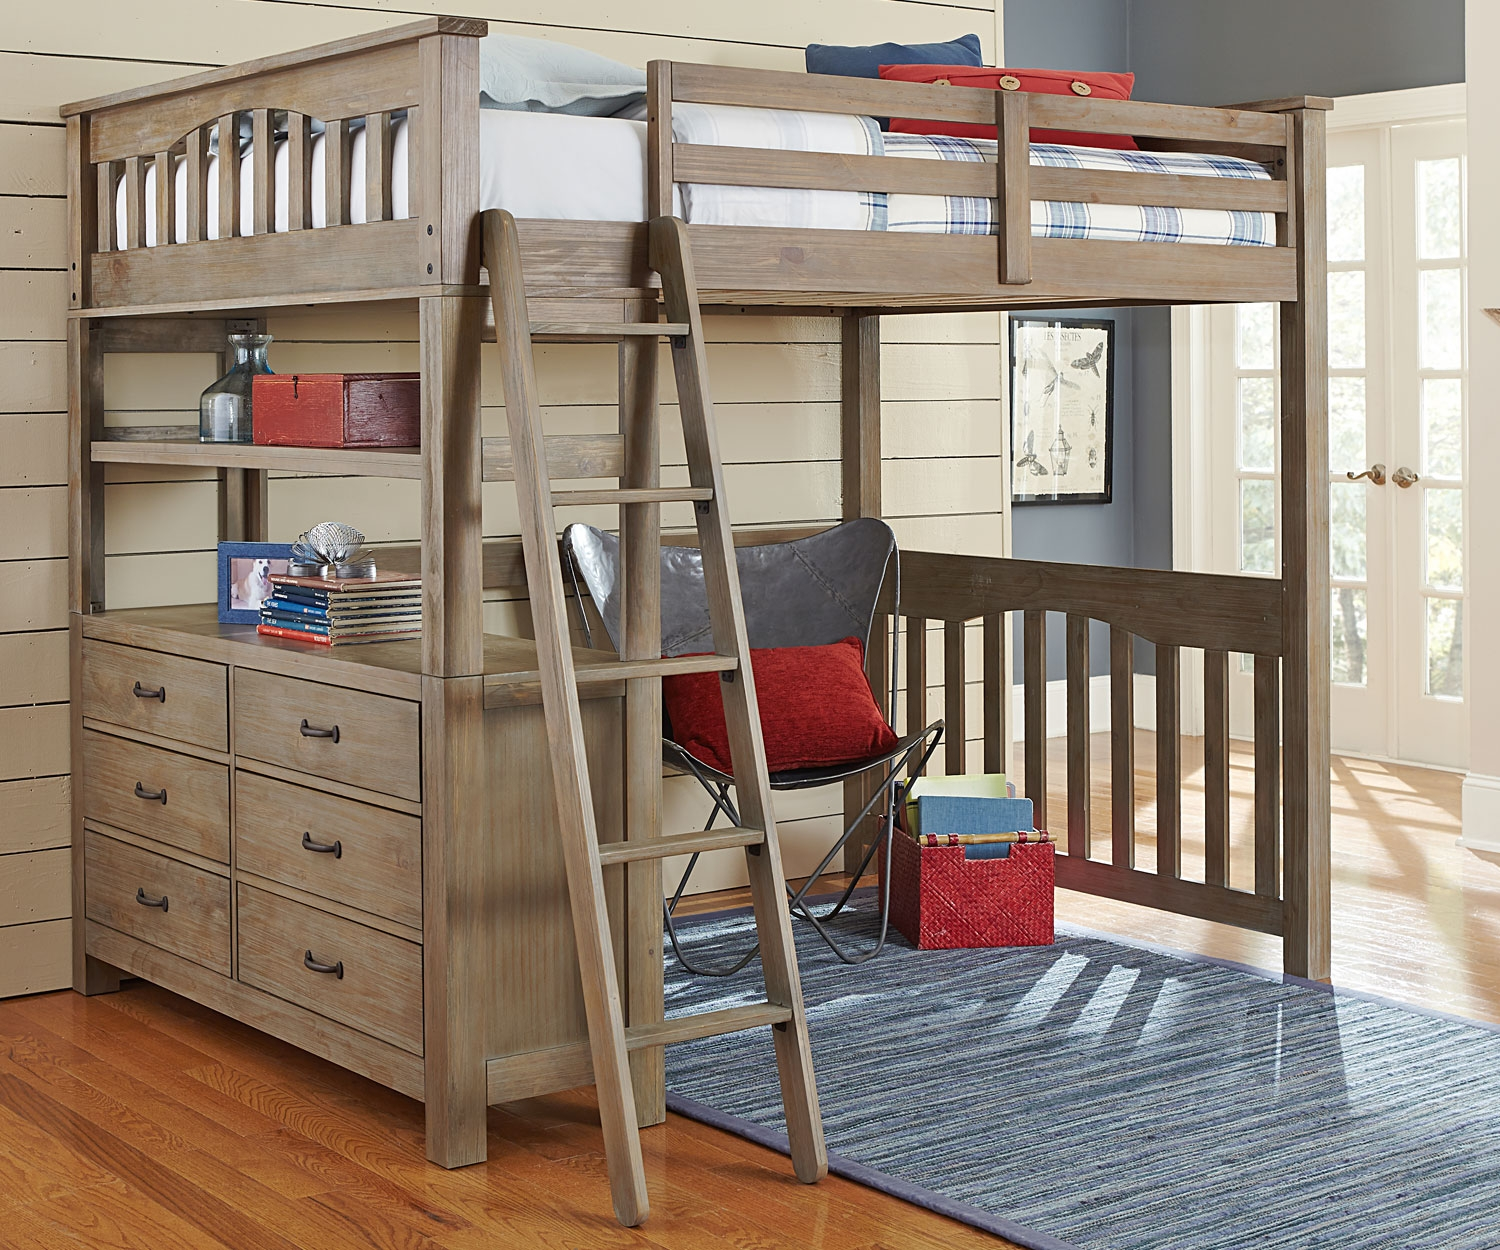 Full size loft bed designs inoutinterior Full size loft beds with desk